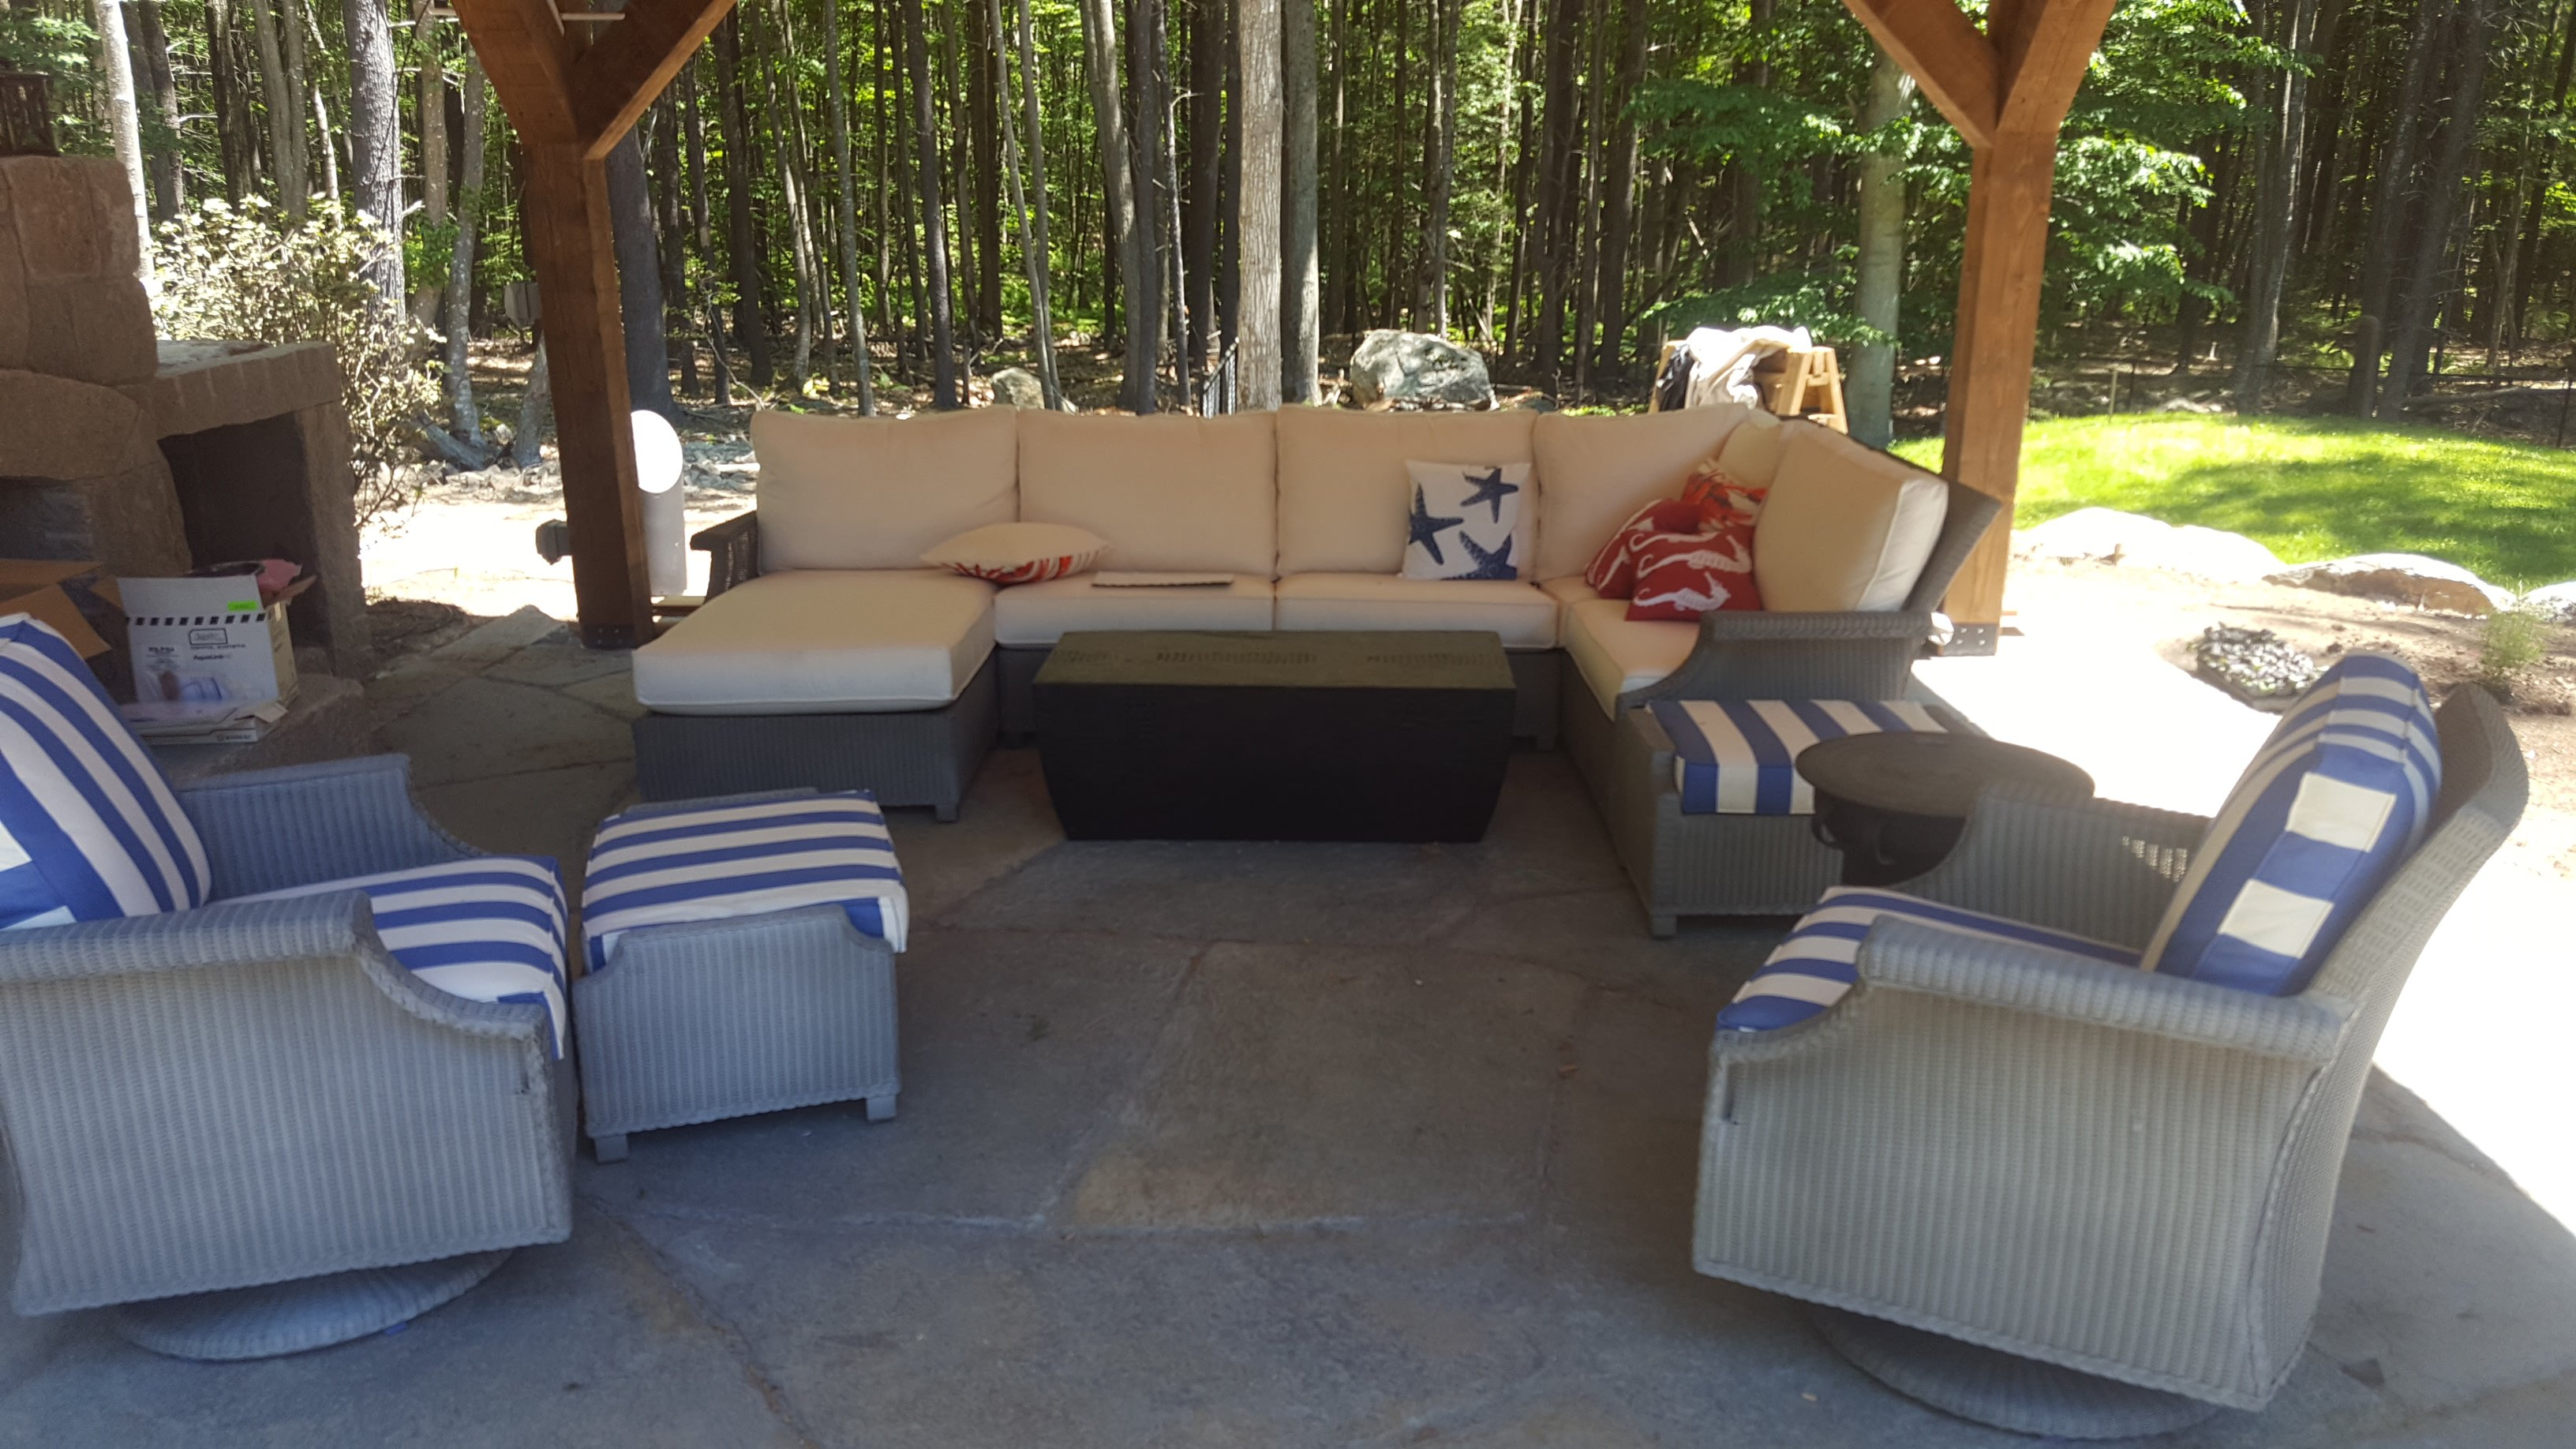 Stove installation patio furniture in hampton falls nh alternative energy hearth and patio Home and hearth patio furniture